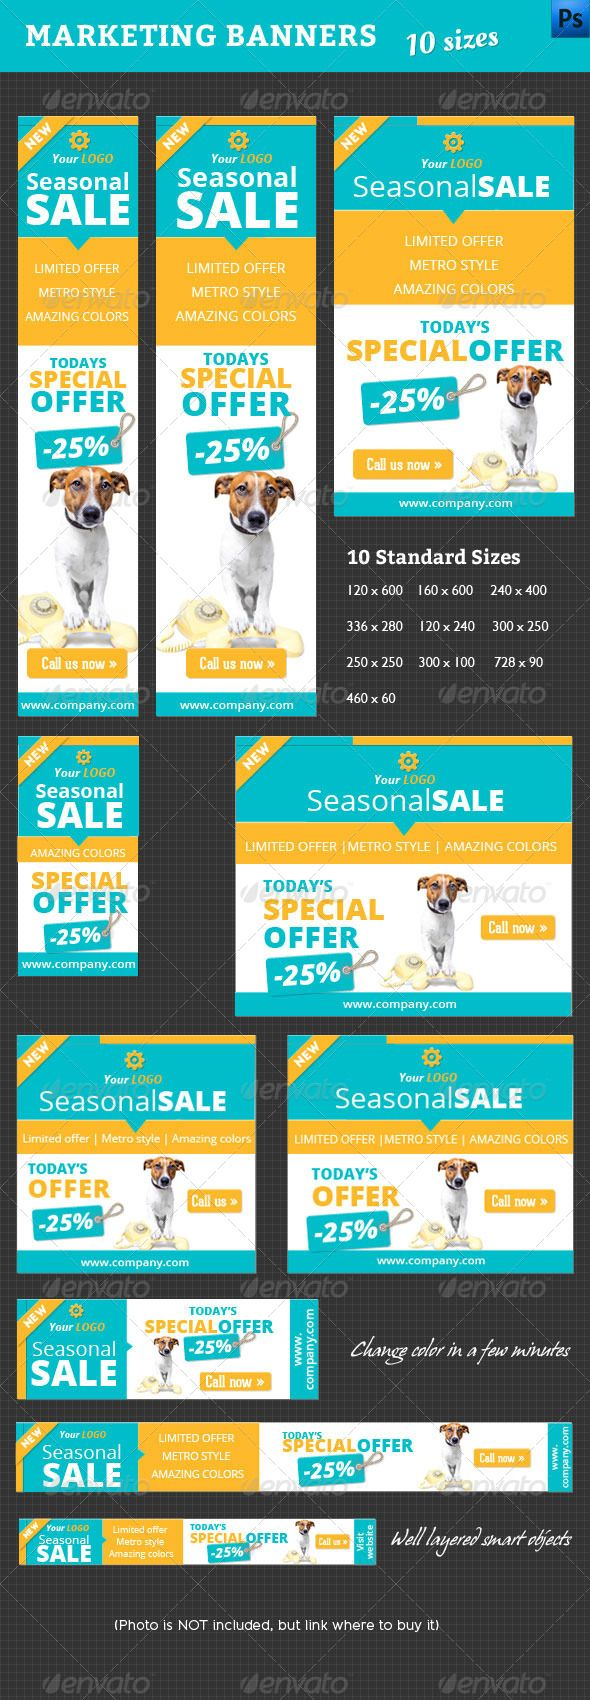 Marketing Web Banner Template PSD | Buy and Download: http://graphicriver.net/item/marketing-banner/4583387?WT.ac=category_thumb&WT.z_author=corrella&ref=ksioks